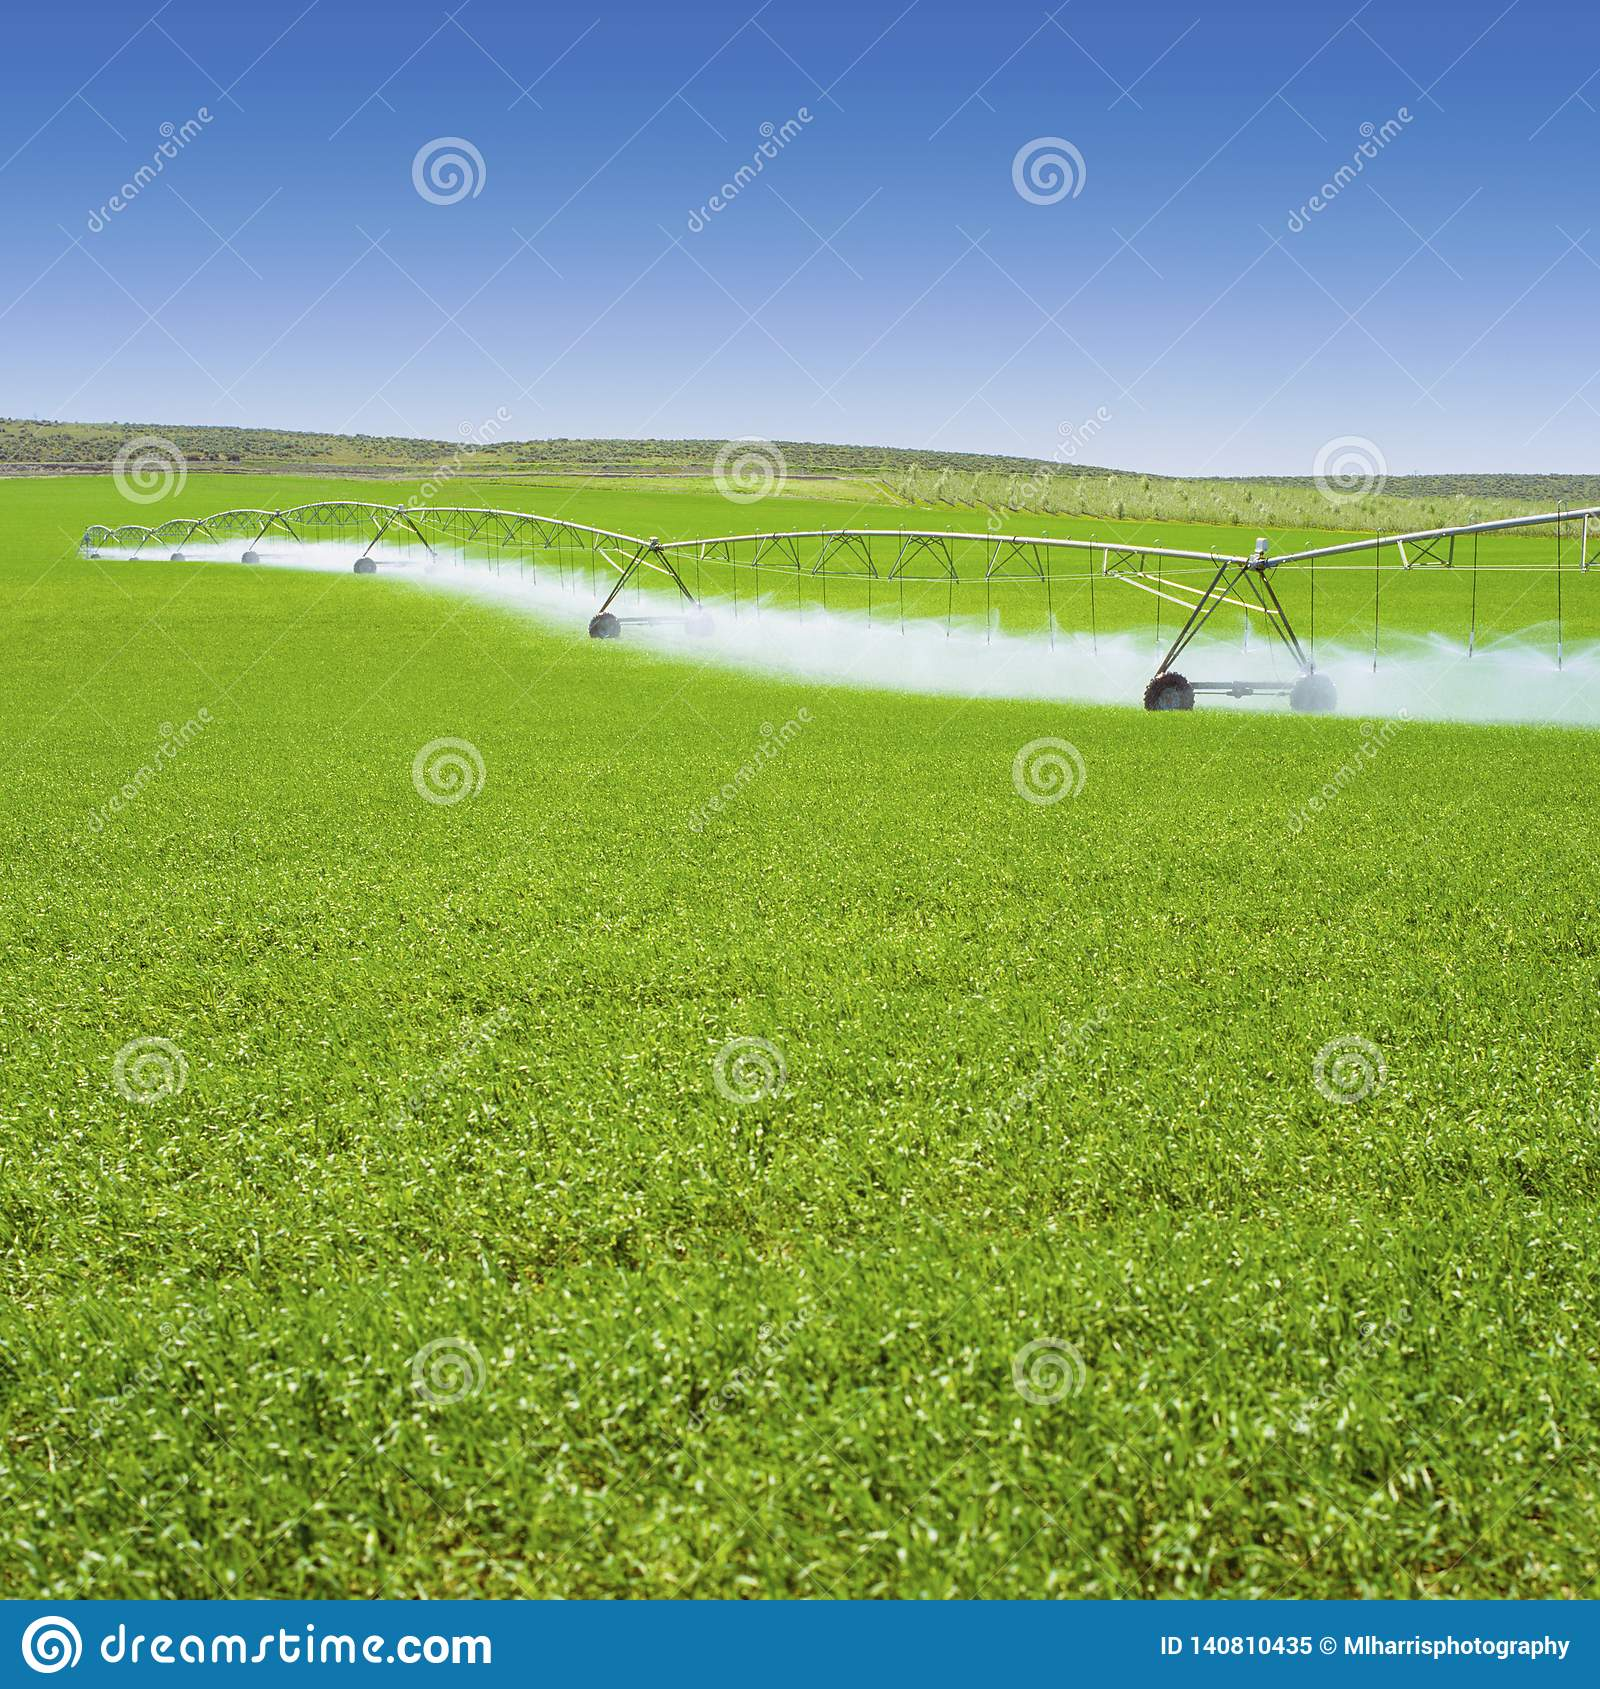 Irrigation equipment watering Spring crops in green farm field. Agriculture farming industry